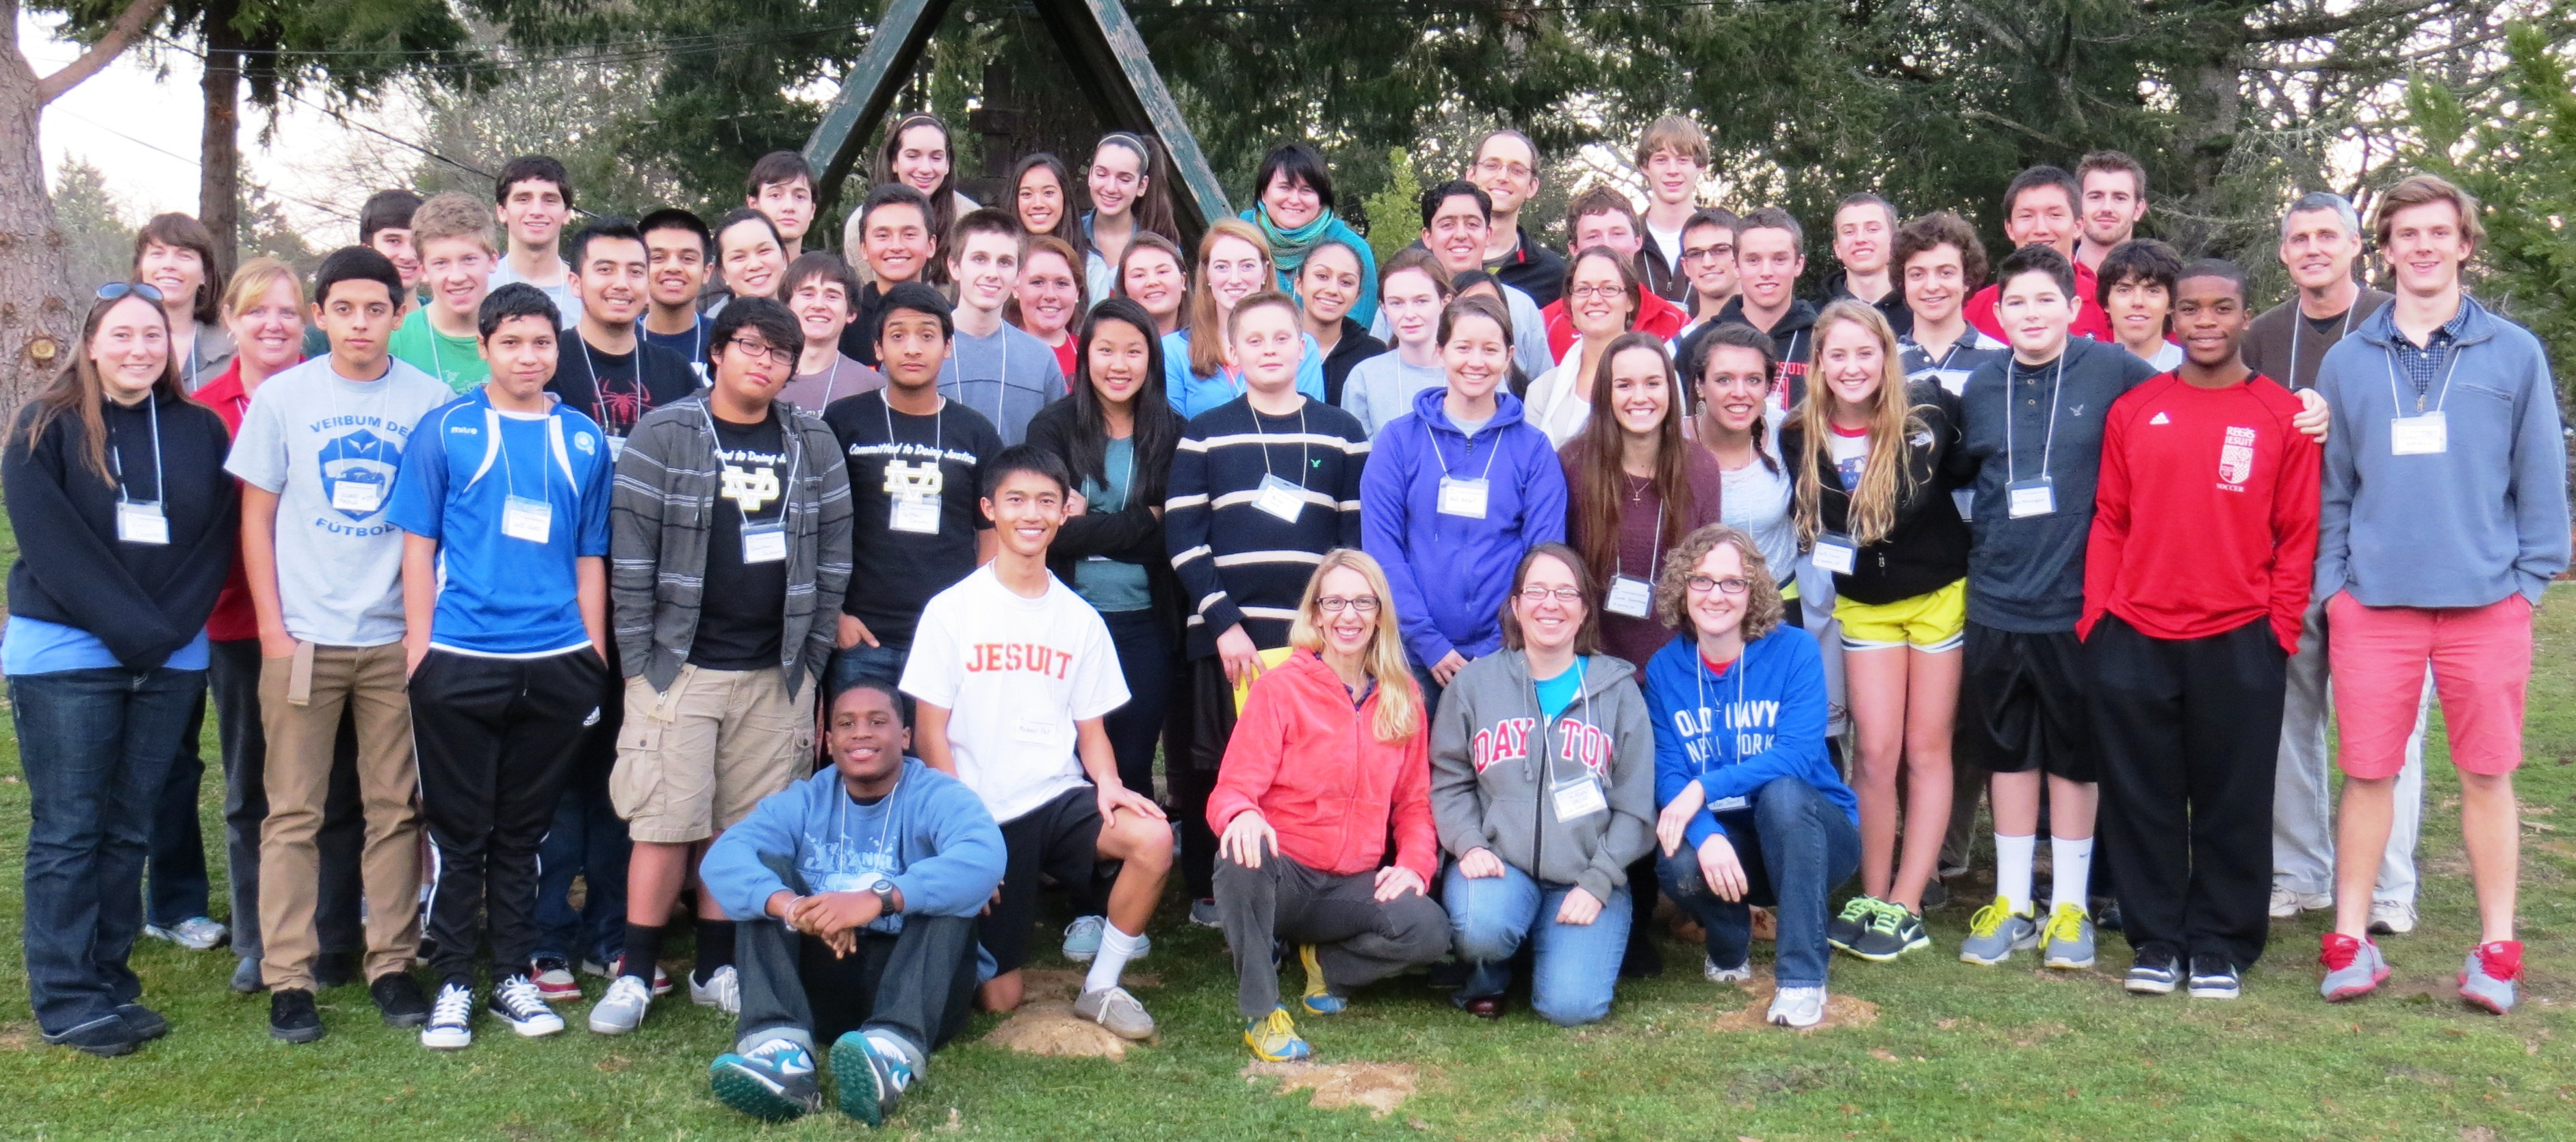 2013 Arrupe Leaders Summit - West Coast